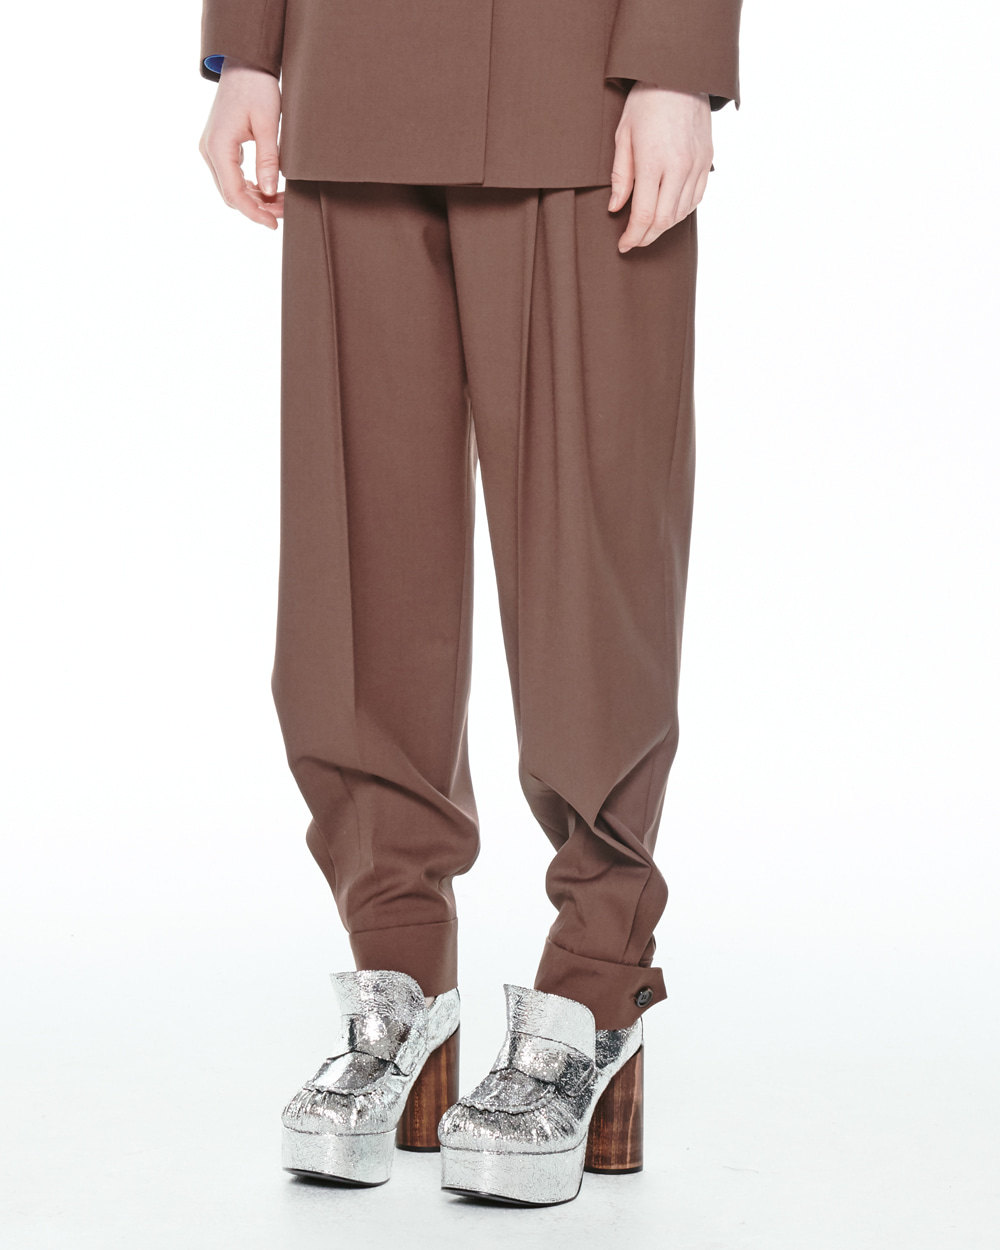 FW20 HI RISE TAILORED BUTTON TROUSERS